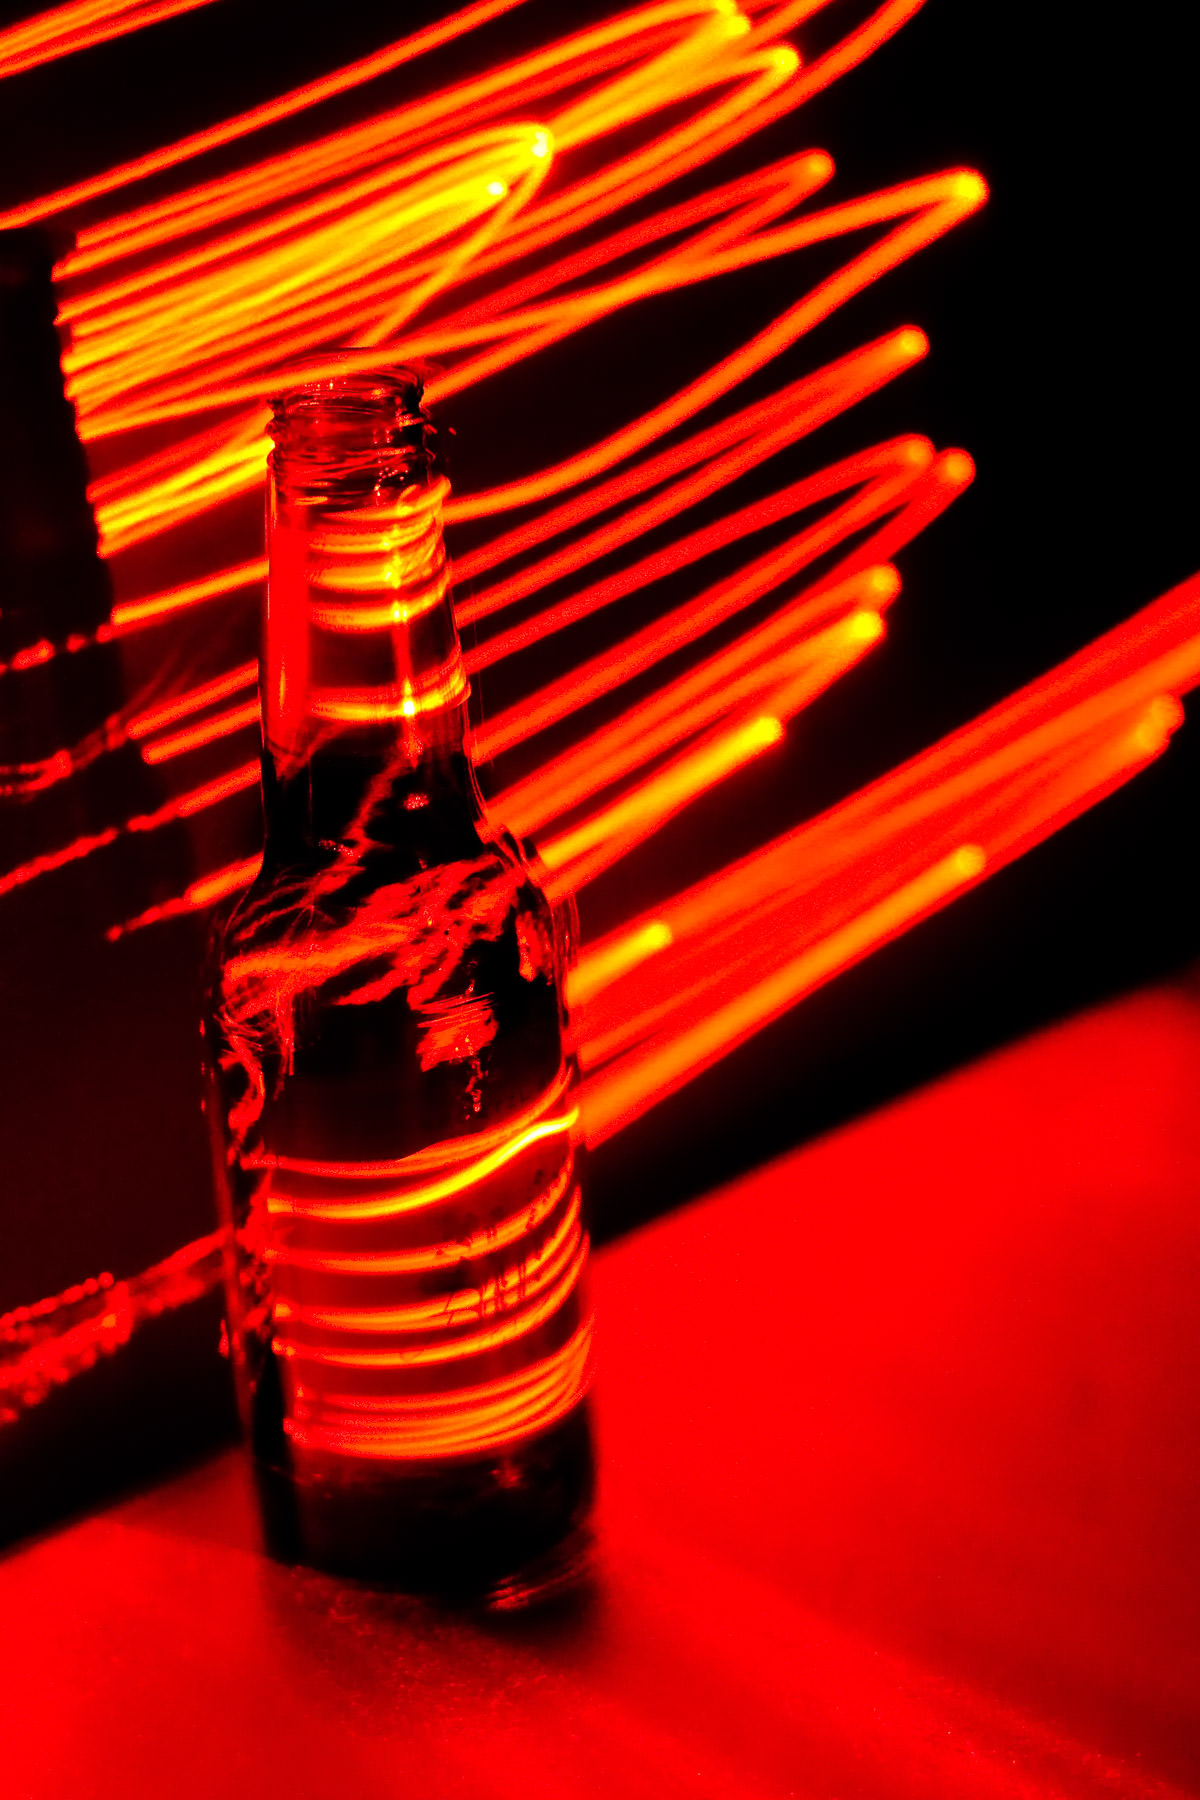 A Shiner Bock beer bottle illuminated by a laser pointer in a long-exposure shot.